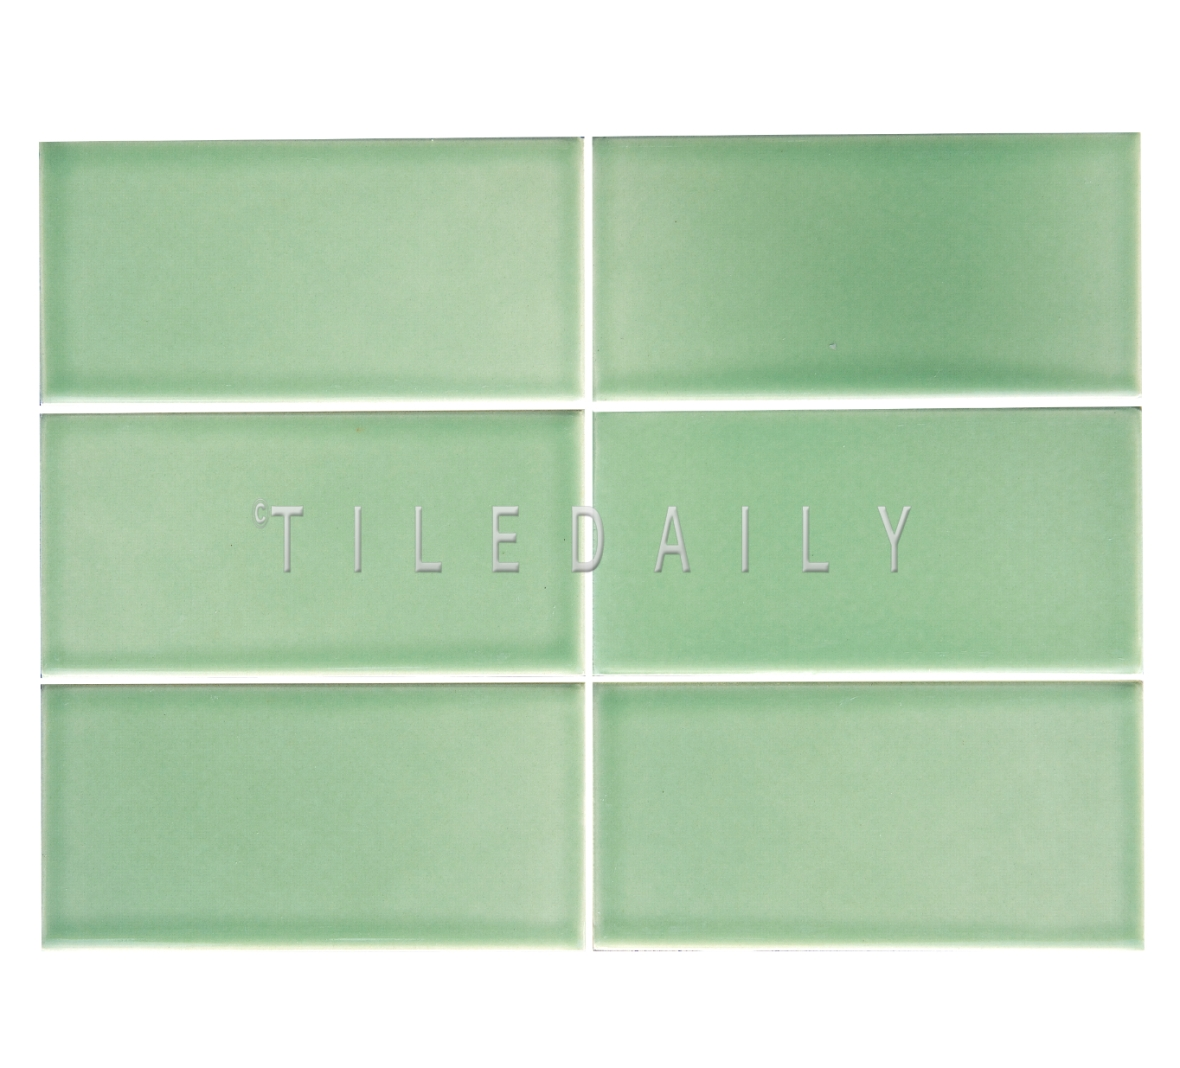 3x6 Cottage Series Ceramic Subway Tile, Apple Green. Available at TileDaily